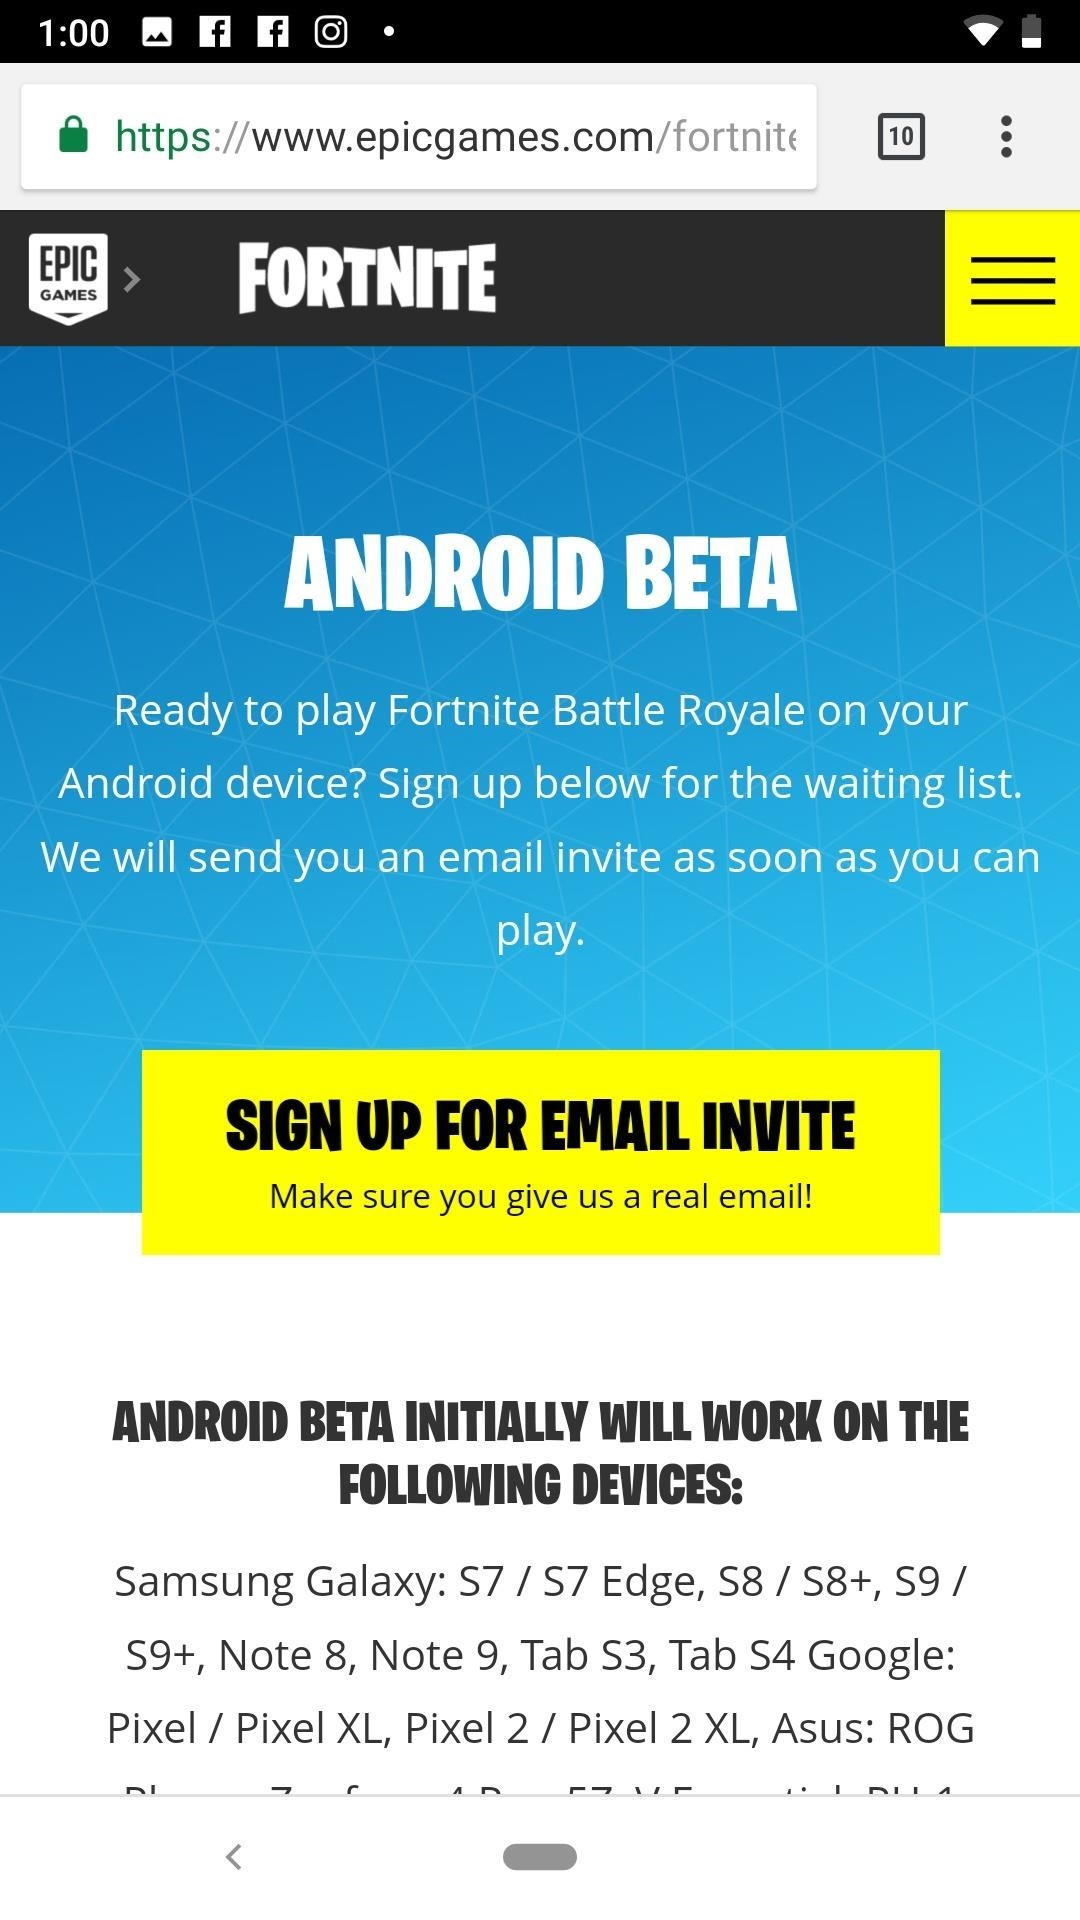 Get Fortnite Battle Royale Running on Almost ANY Android Device — No